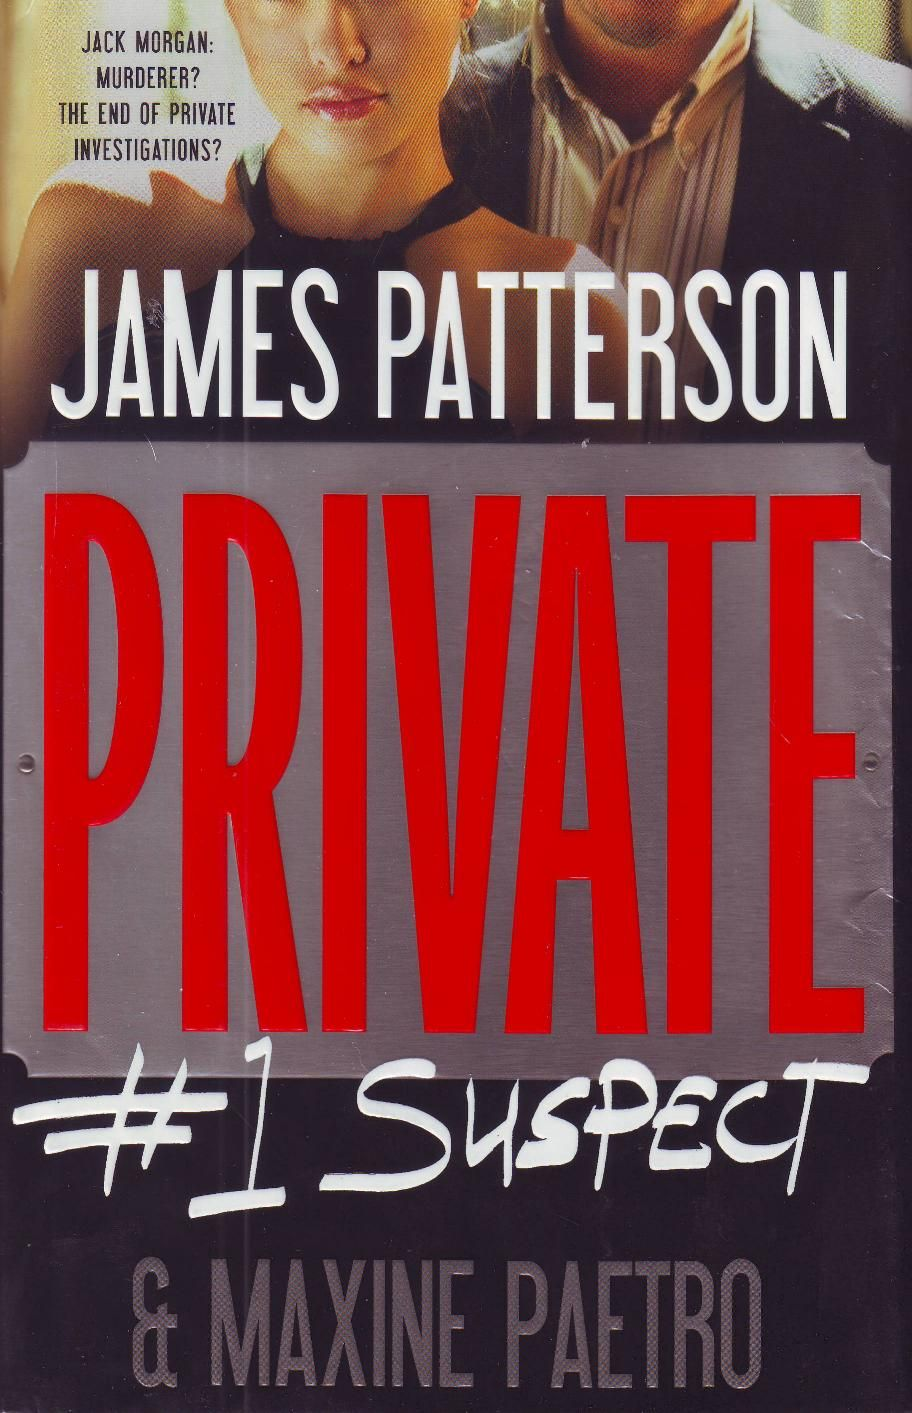 Don't miss this Patterson book - excellent read